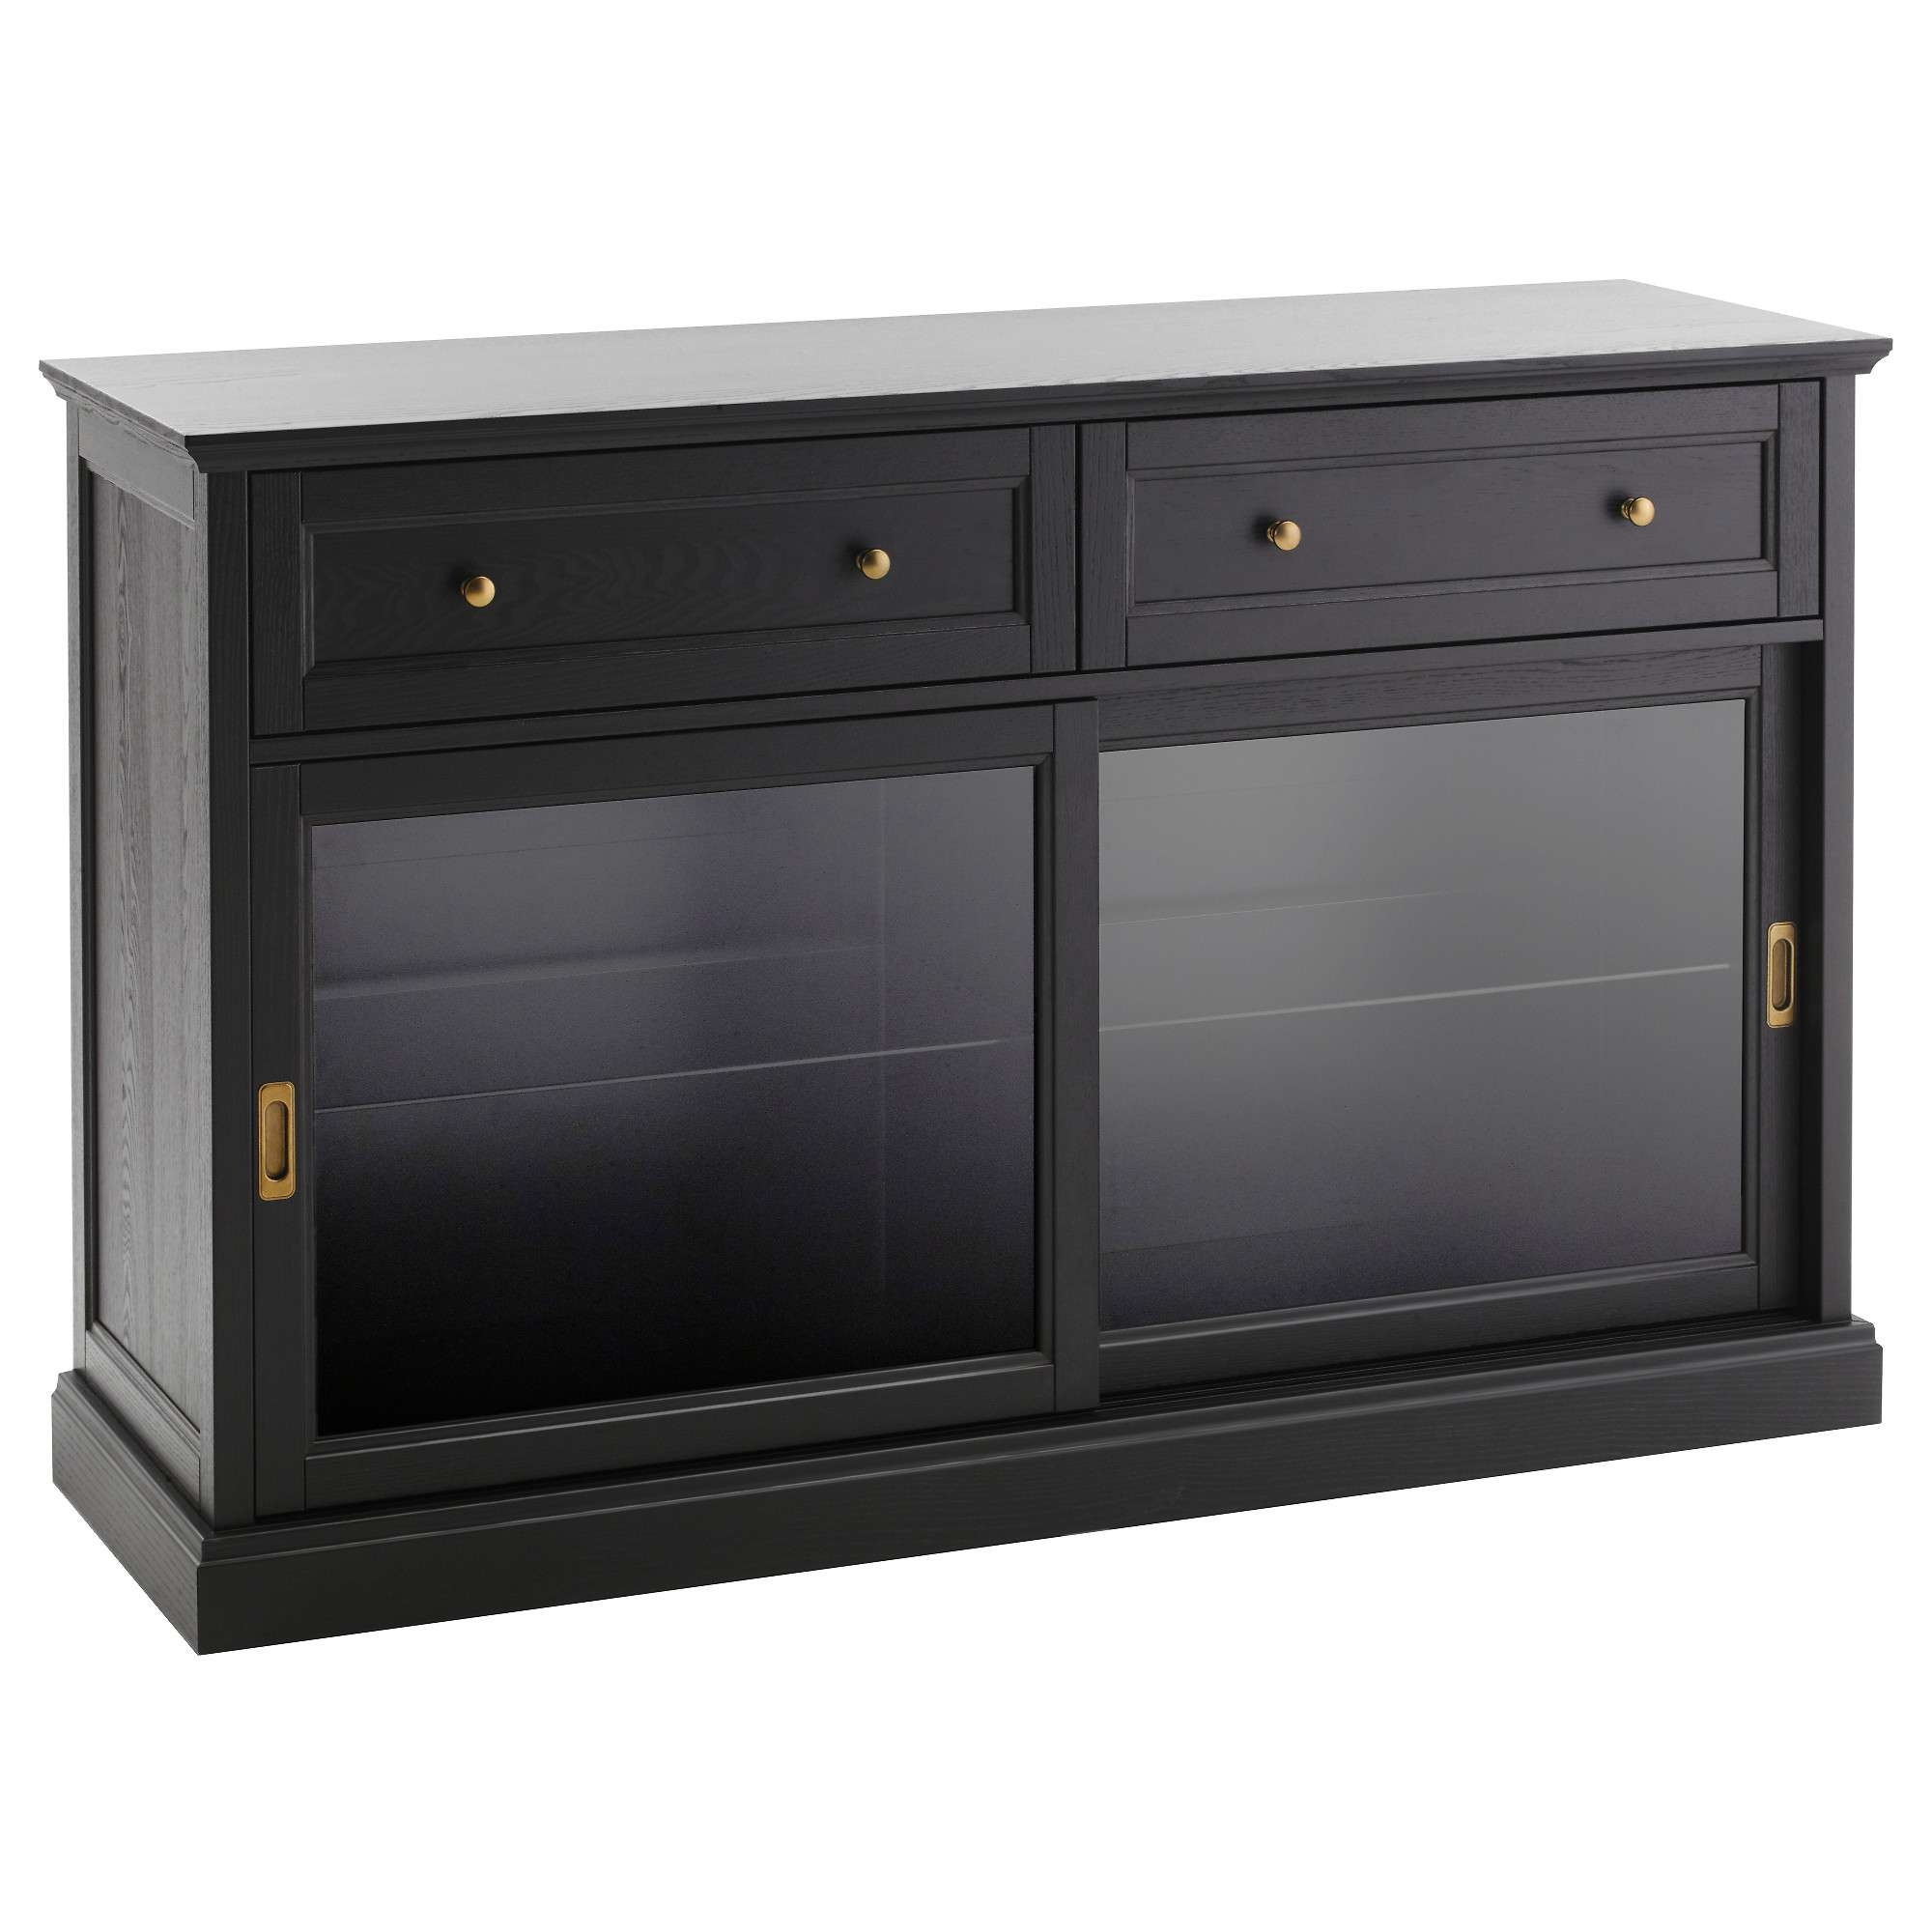 Buffet Tables & Sideboards – Ikea With Regard To Buffet Sideboards Servers (View 18 of 20)